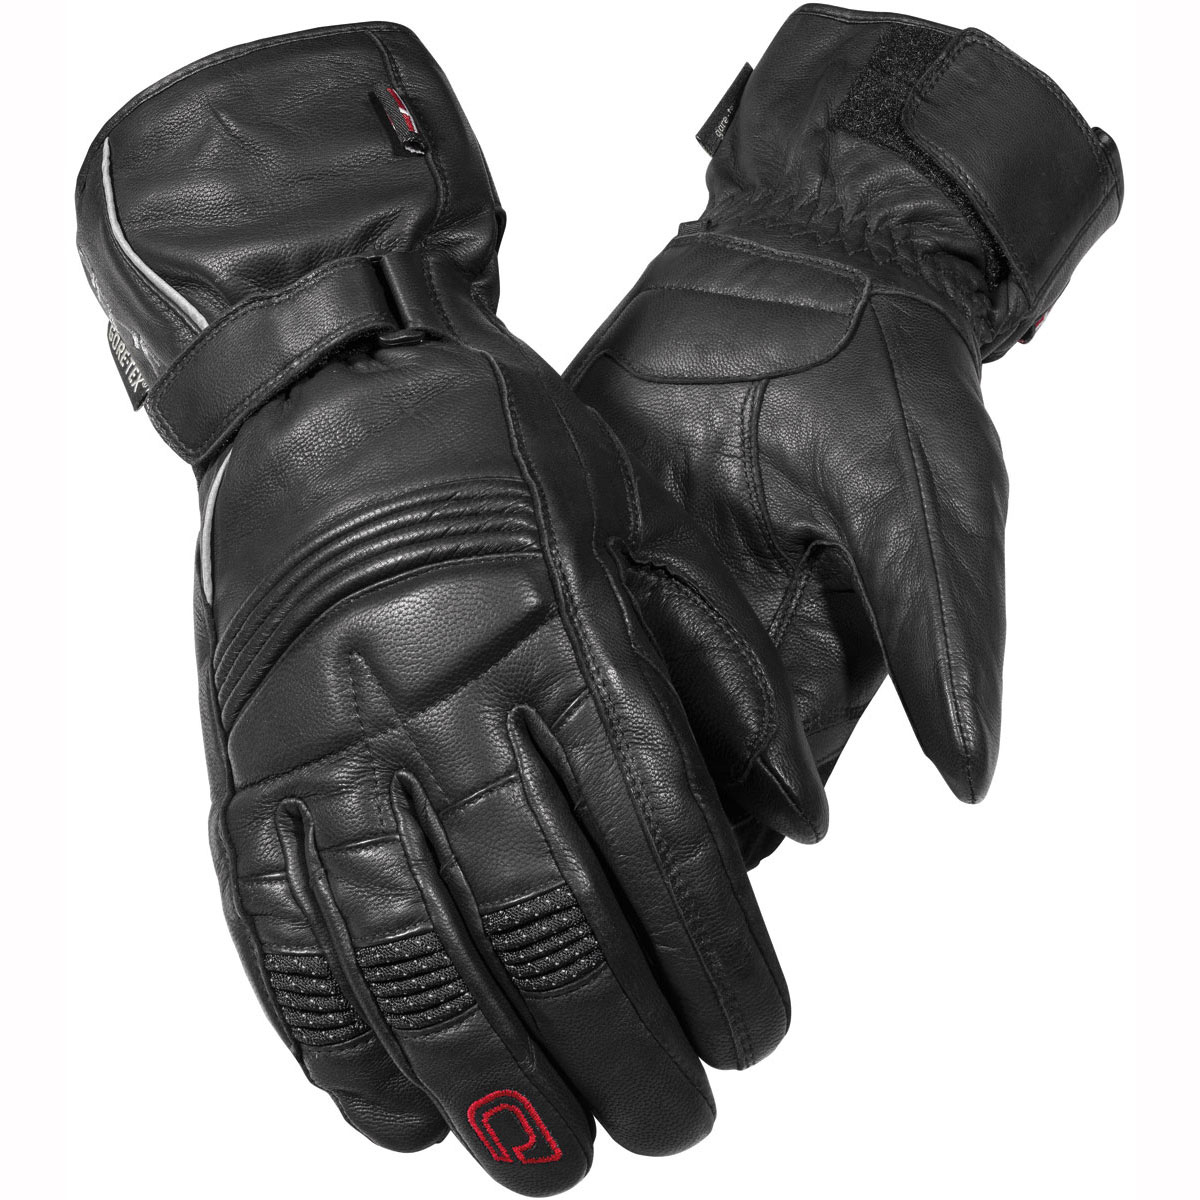 The Dane Nibe 2 X-Trafit Gloves